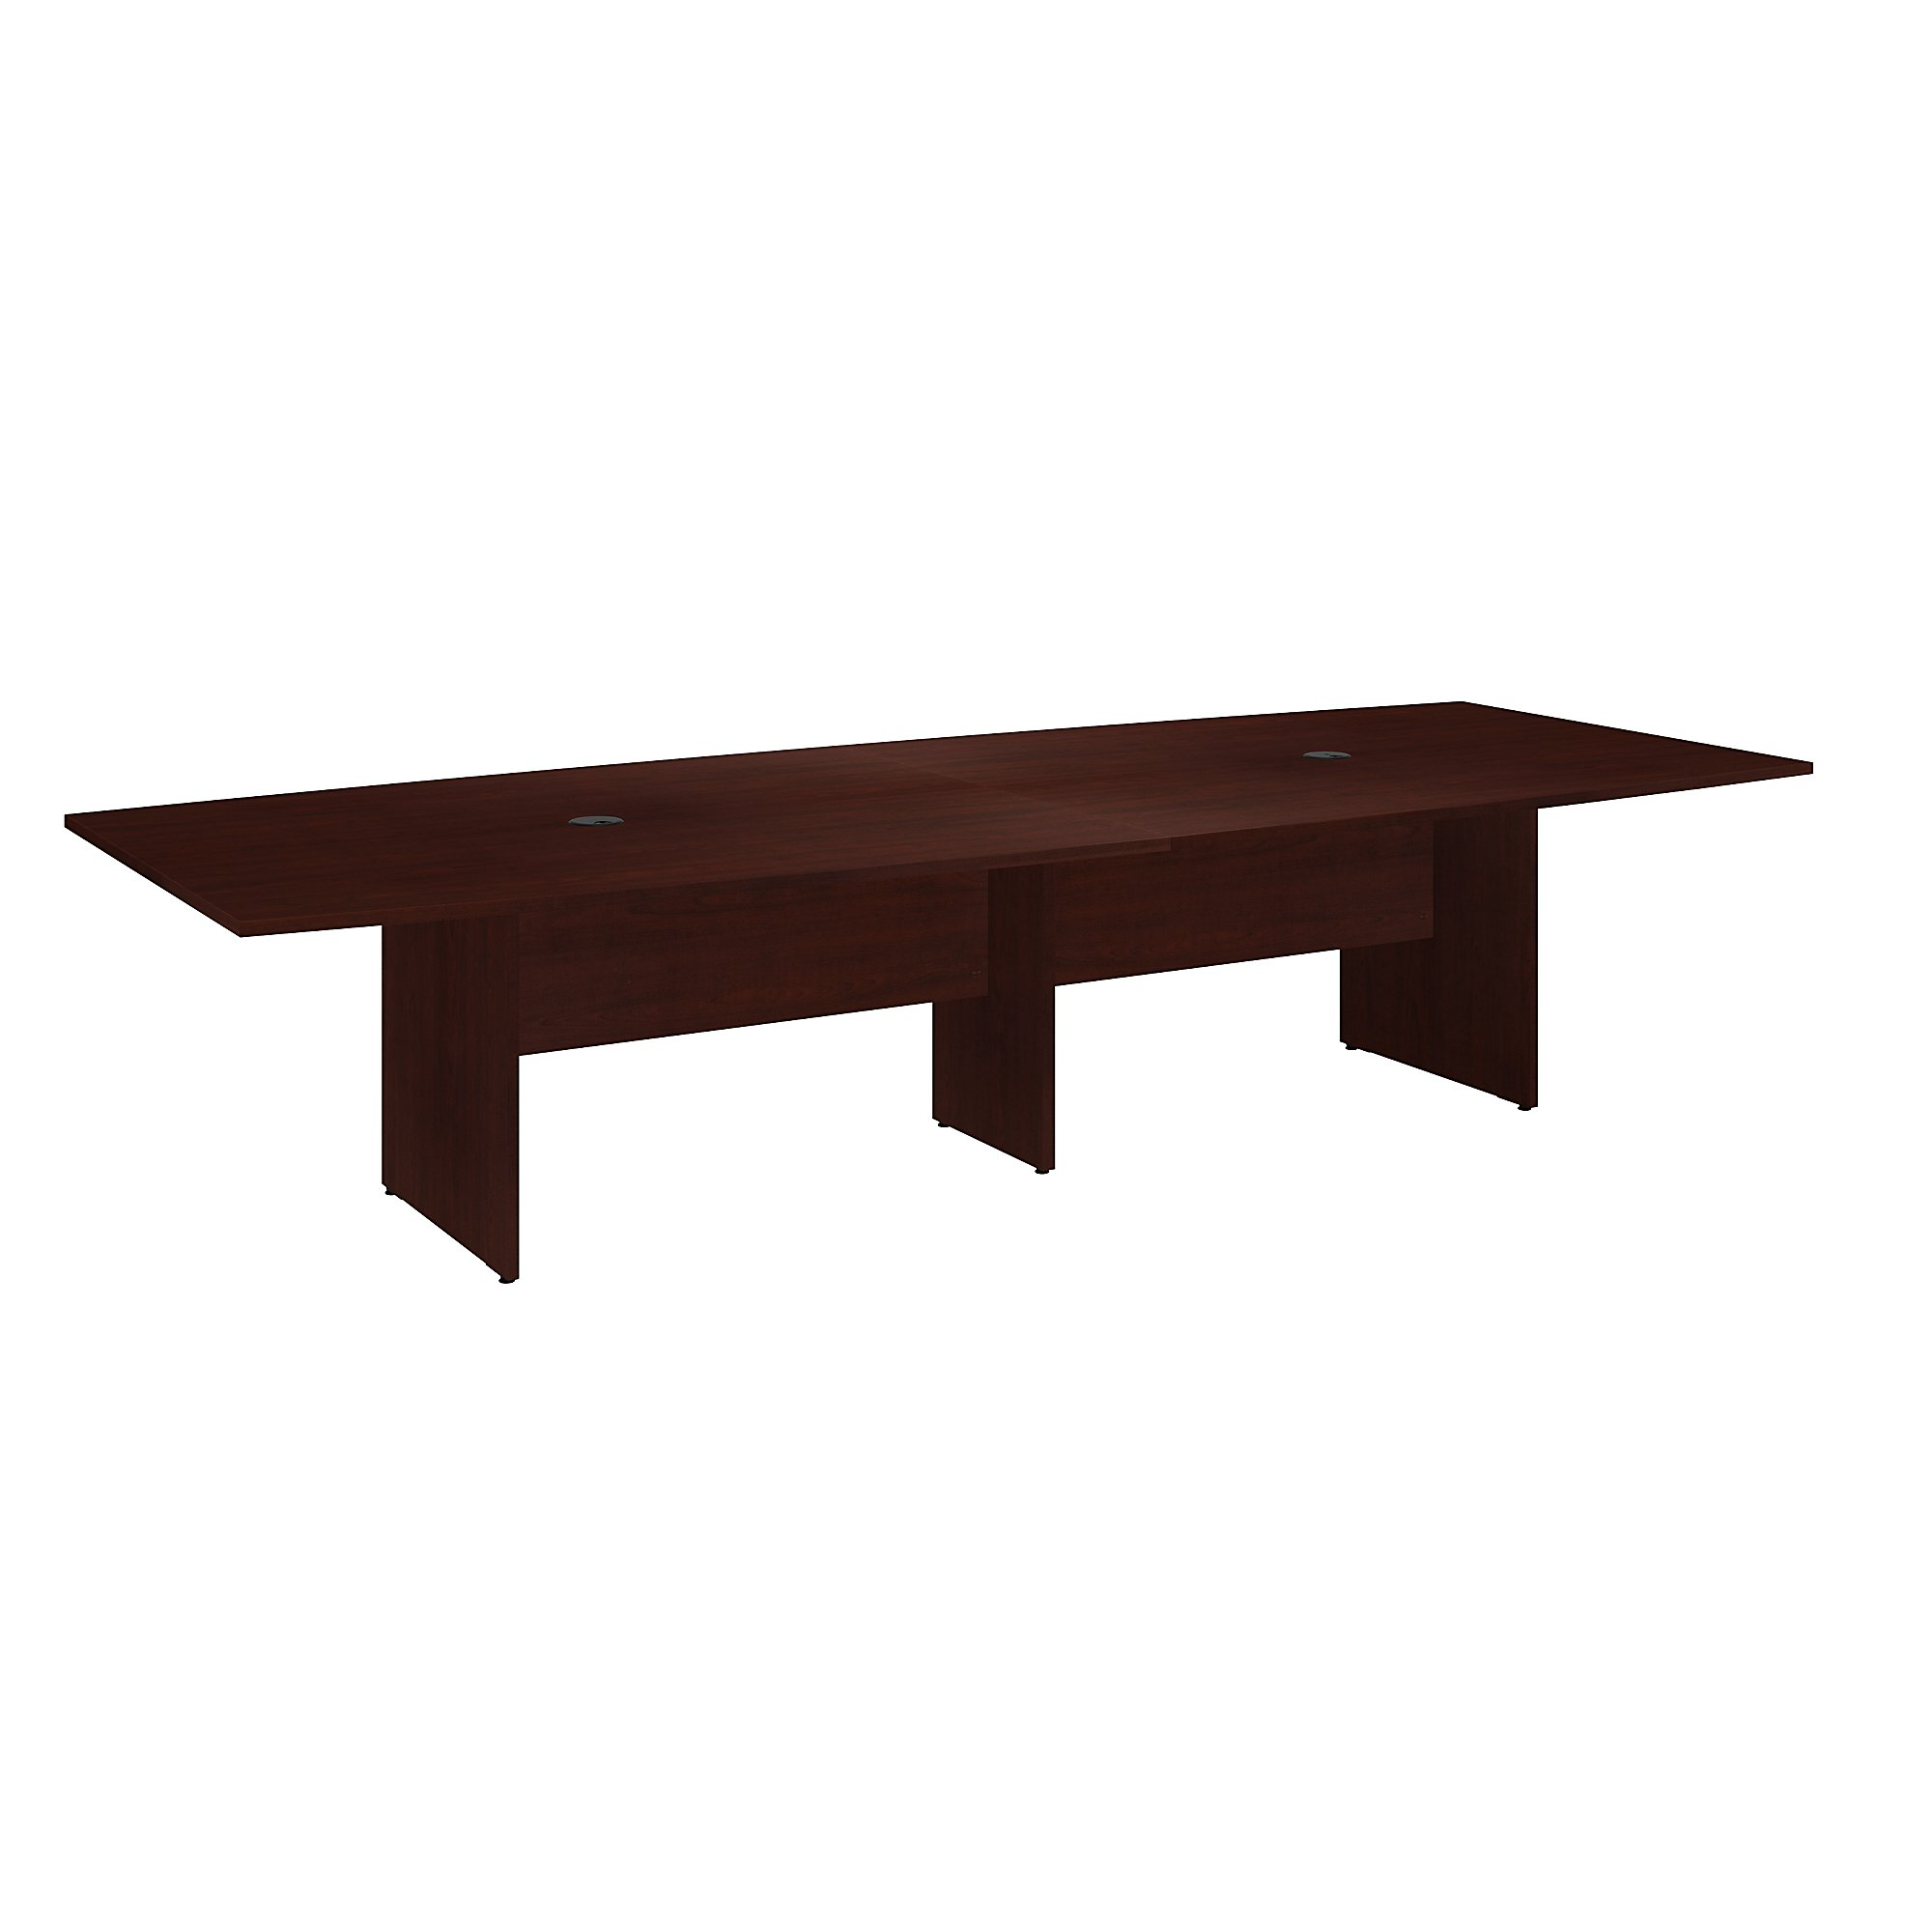 10' boat shaped conference table in harvest cherry